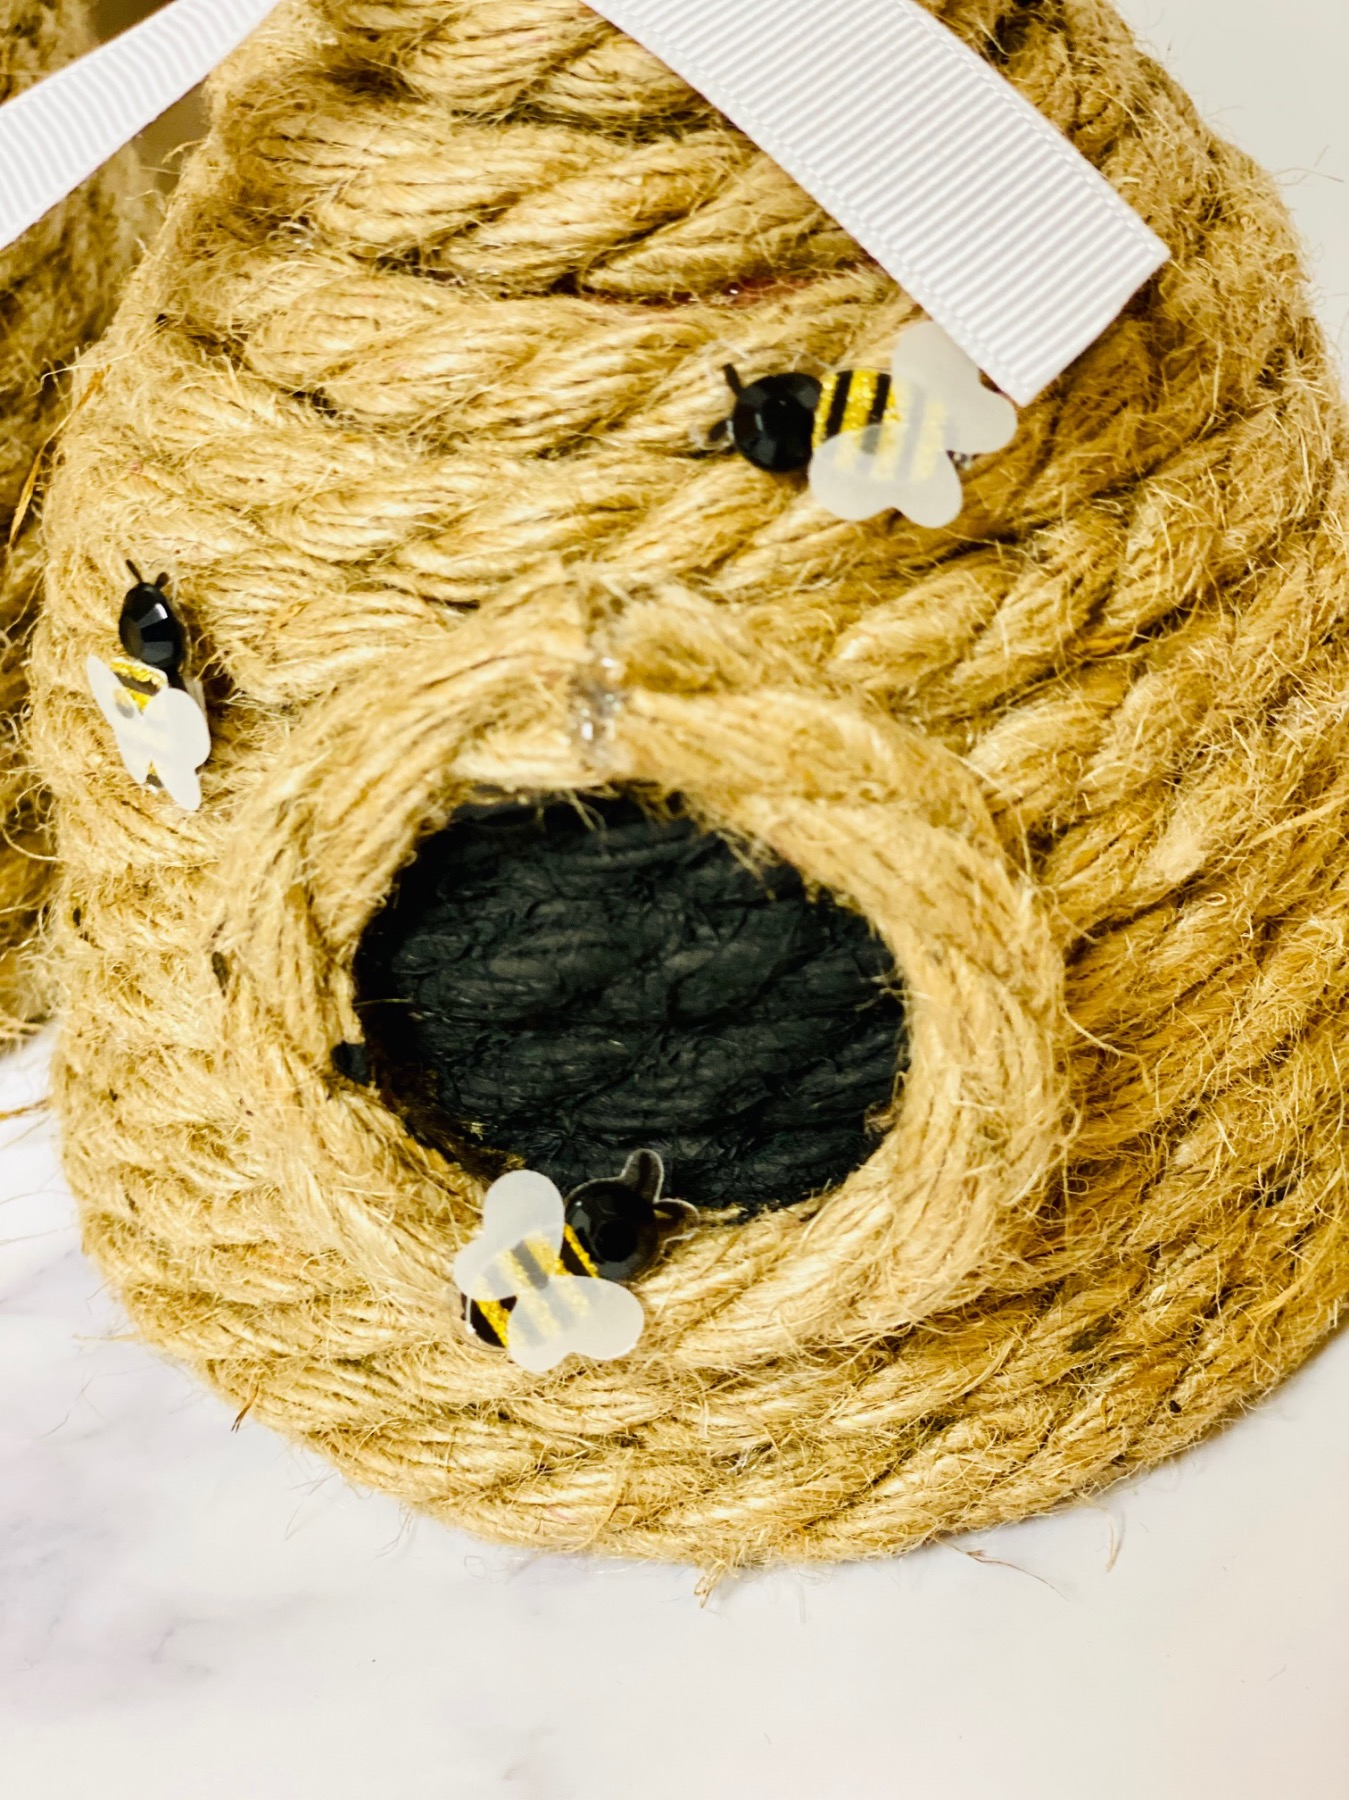 how to make rope sculpture beehive pop shop america